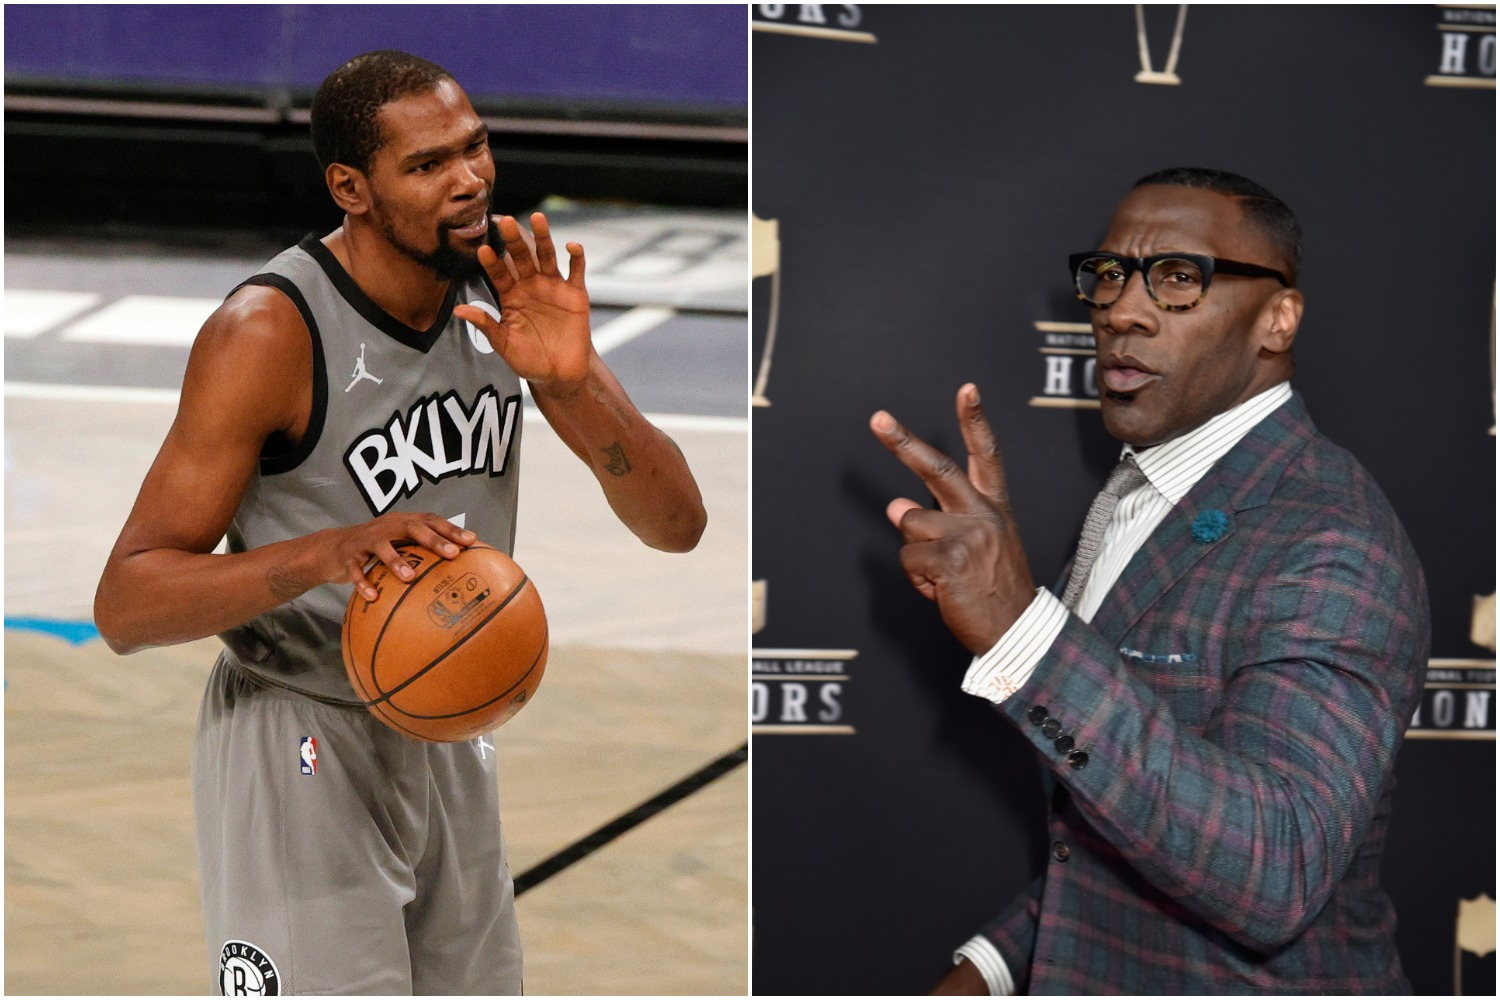 Brooklyn Nets star Kevin Durant pictured next to former NFL tight end Shannon Sharpe.